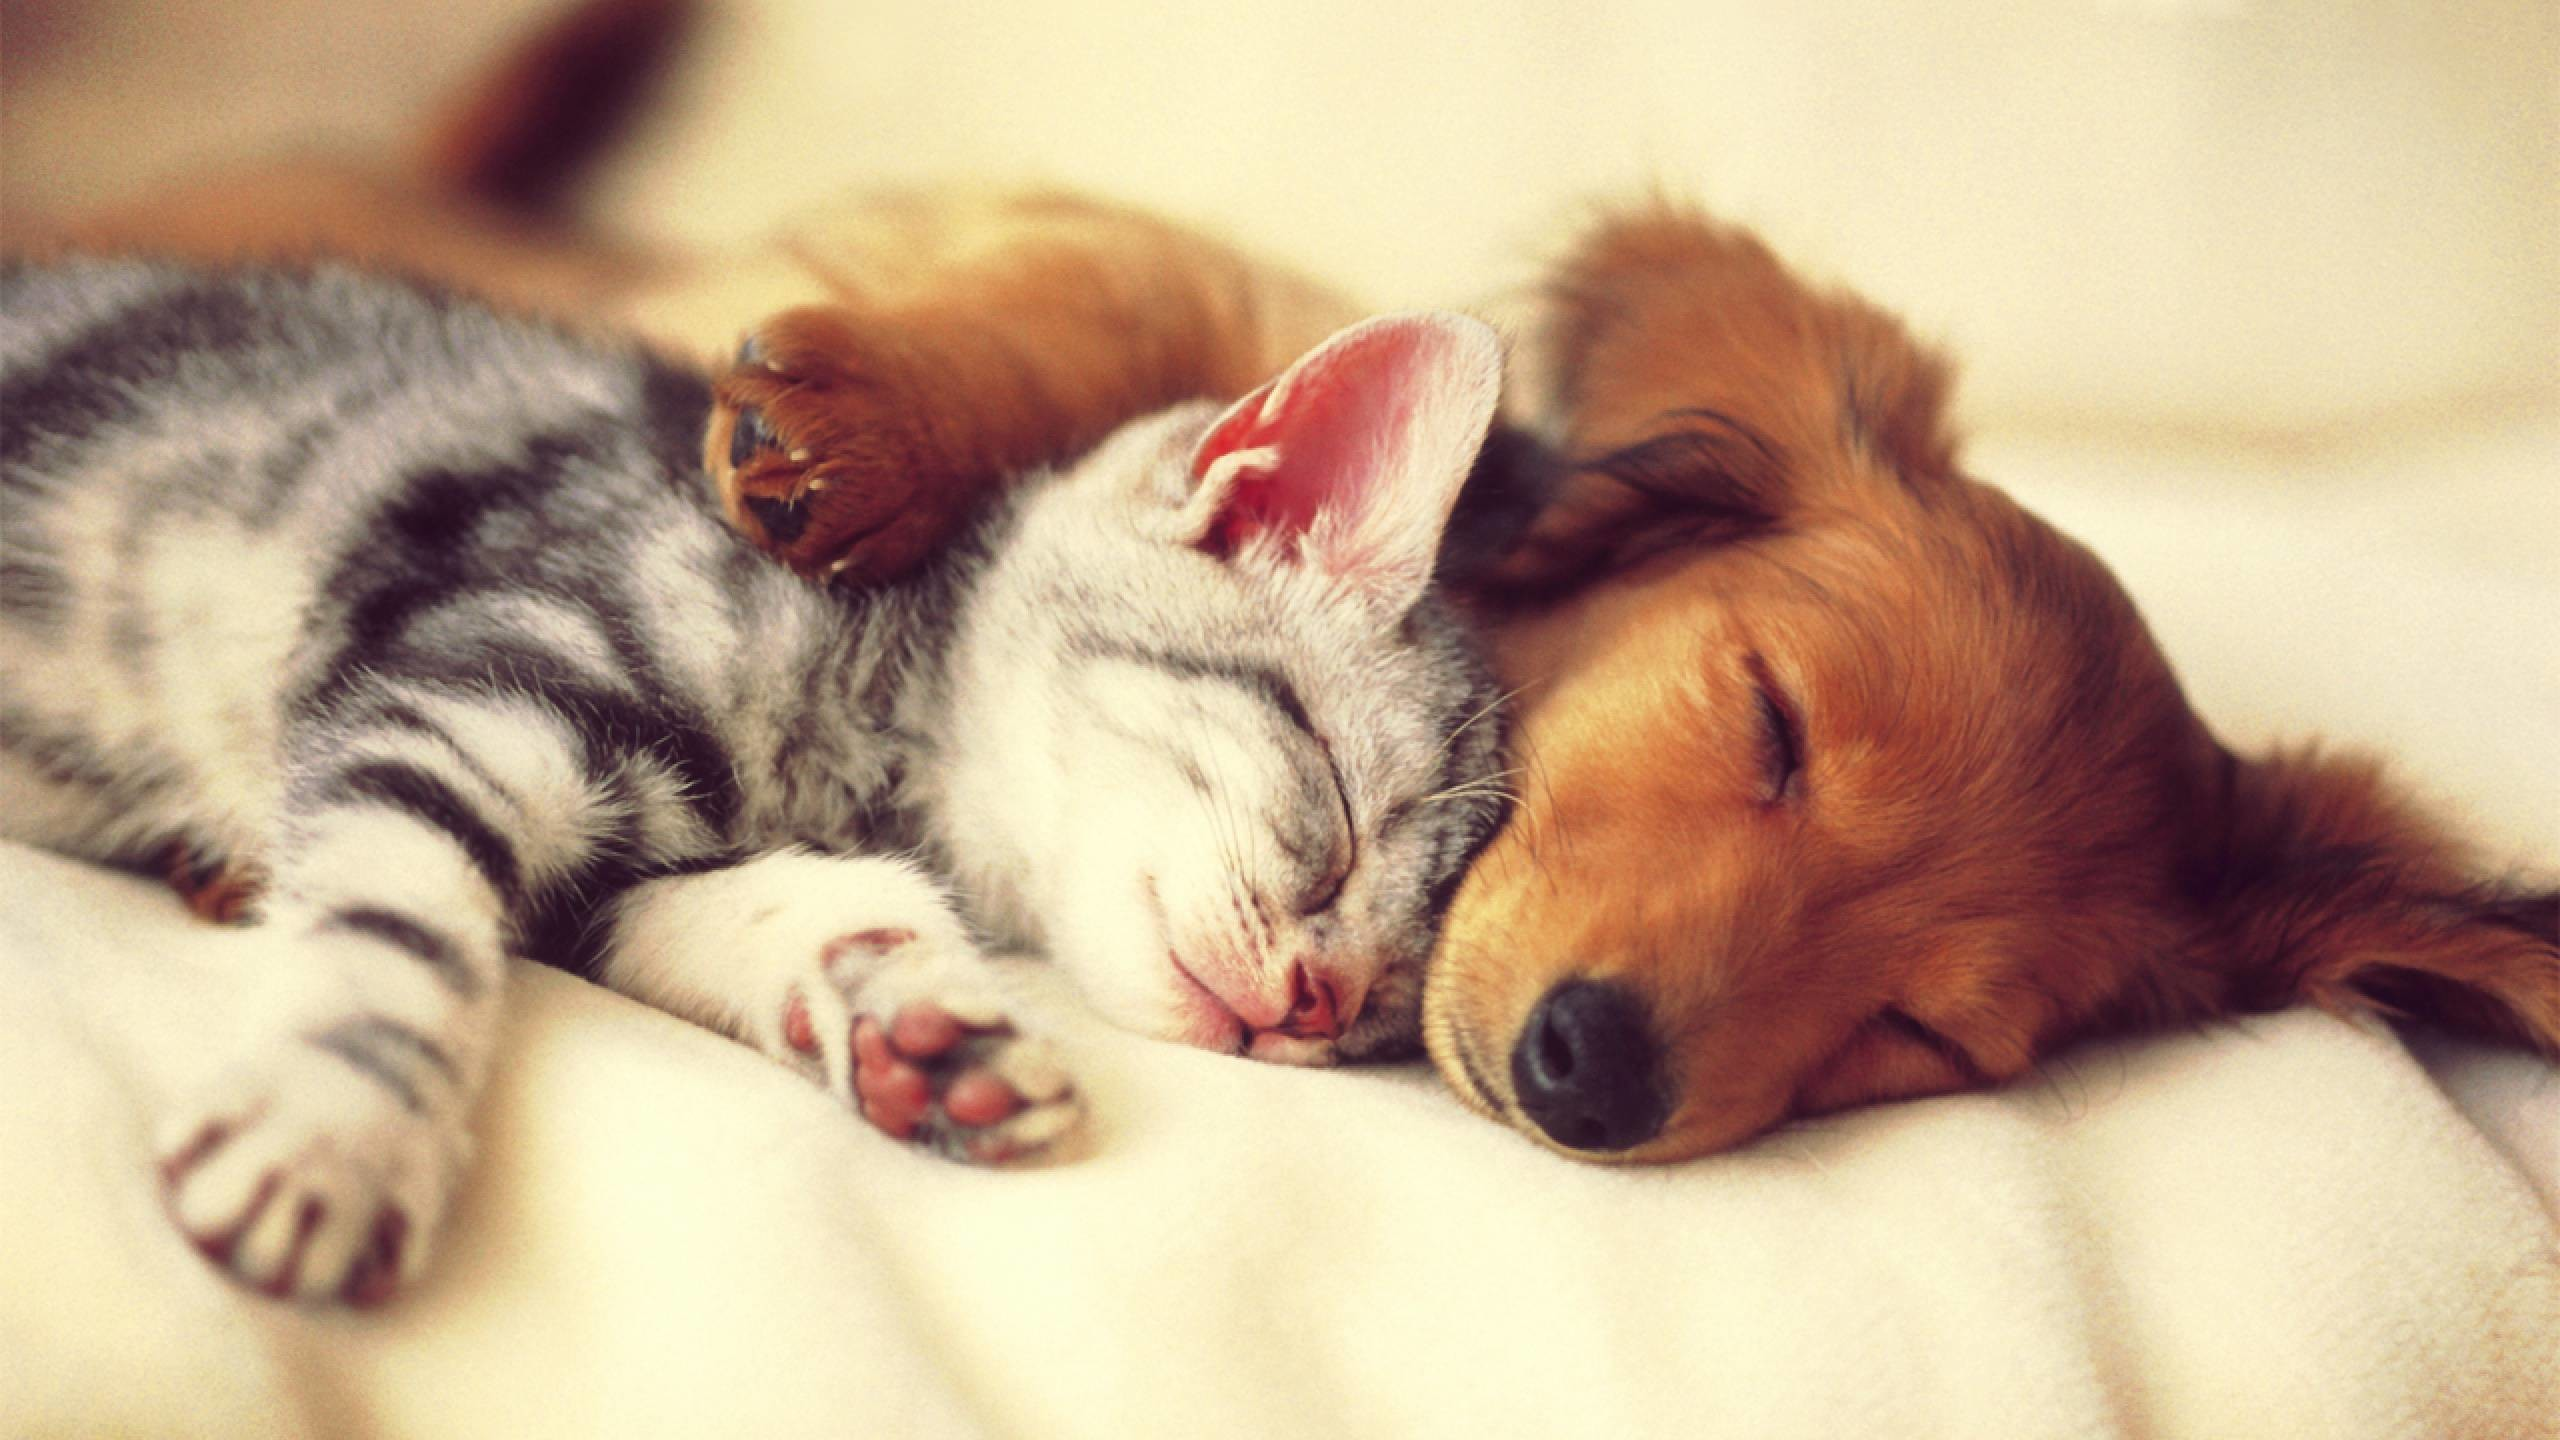 2560x1440 ... cute cat and dog sleep wallpaper.